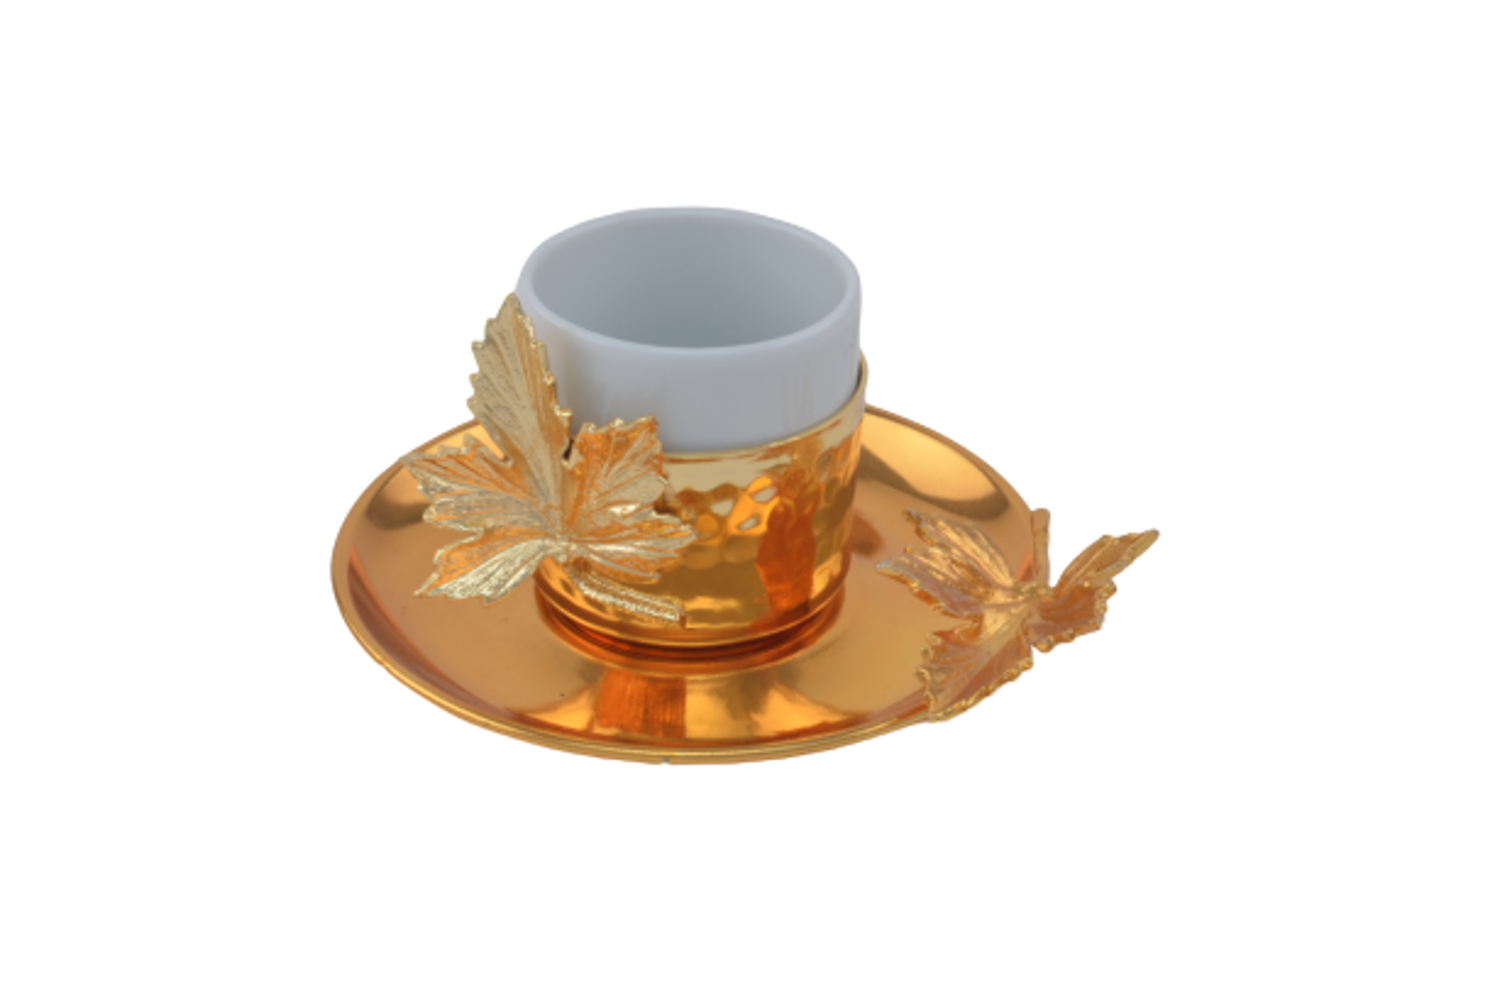 Picture of MEVLANA TURKISH COFFEE CUP GOLD LEAF